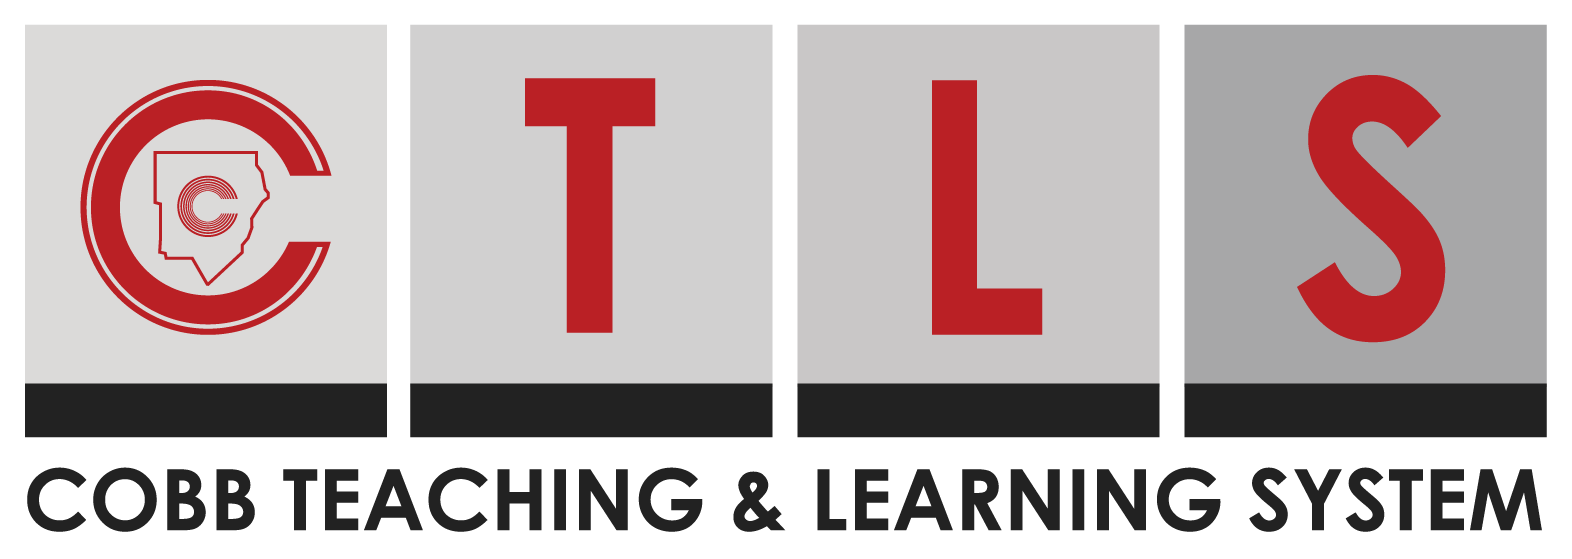 Cobb Teaching and Learning System Logo